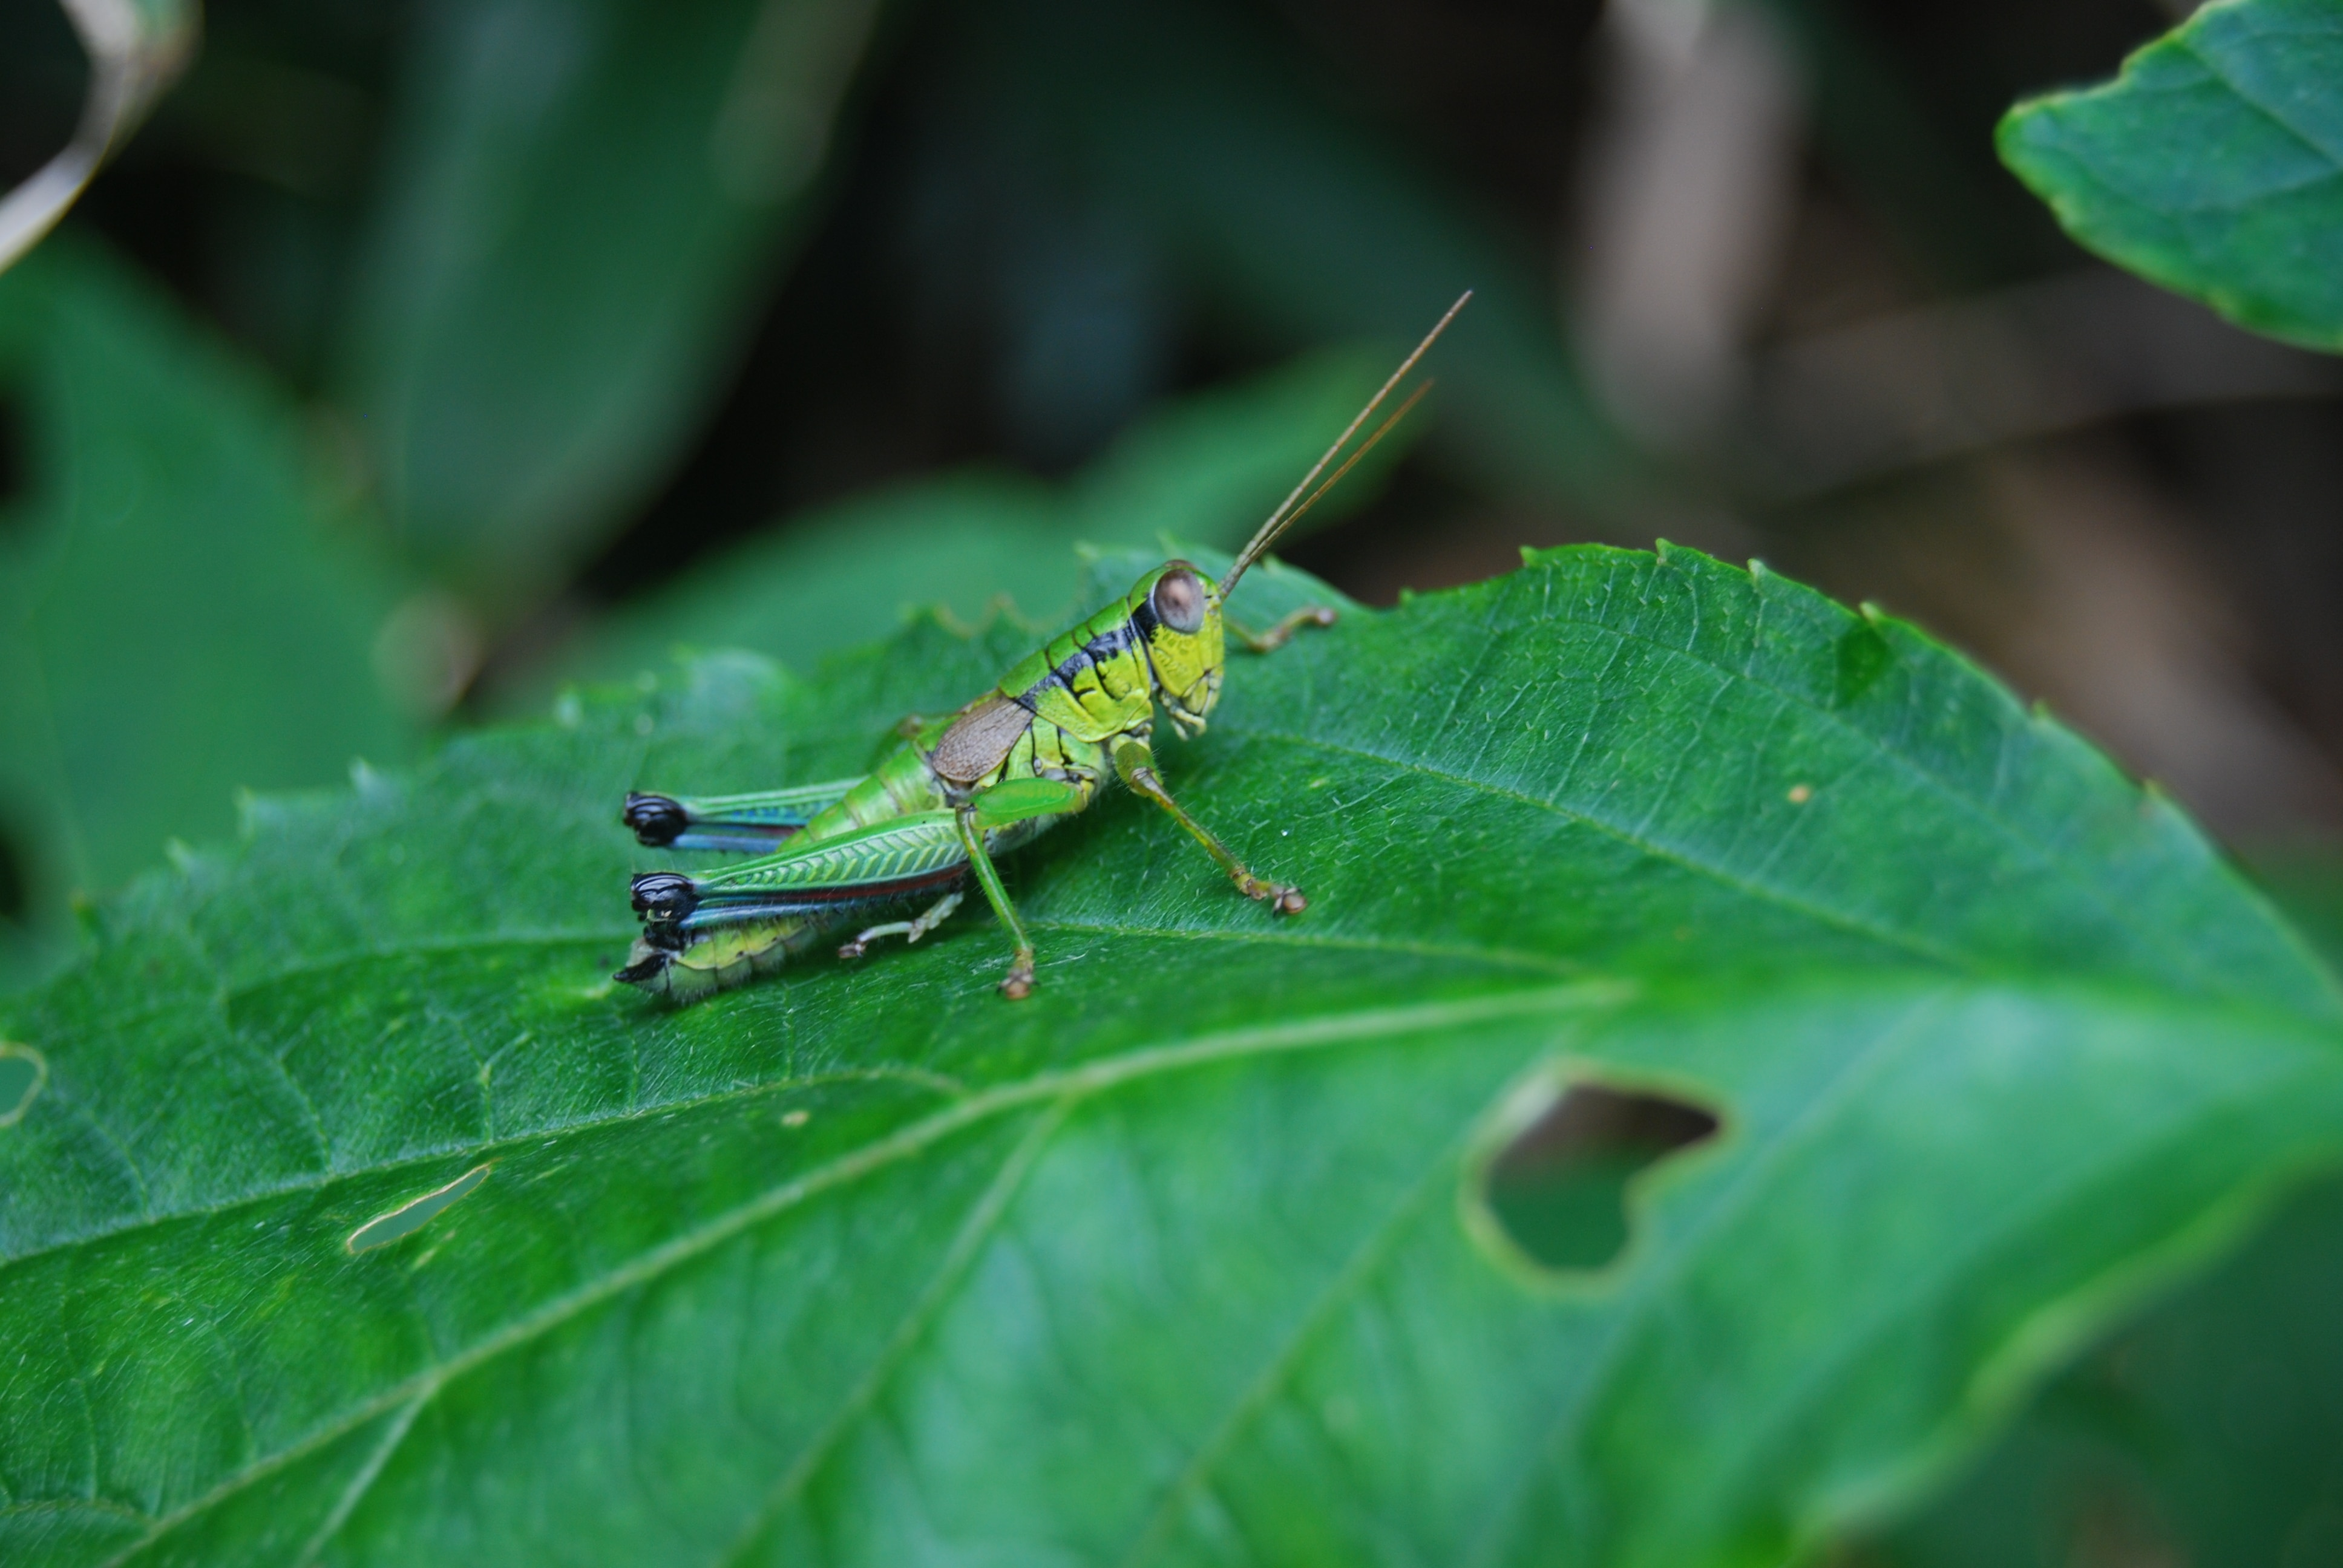 green grasshopper on green leaf plant free image | peakpx